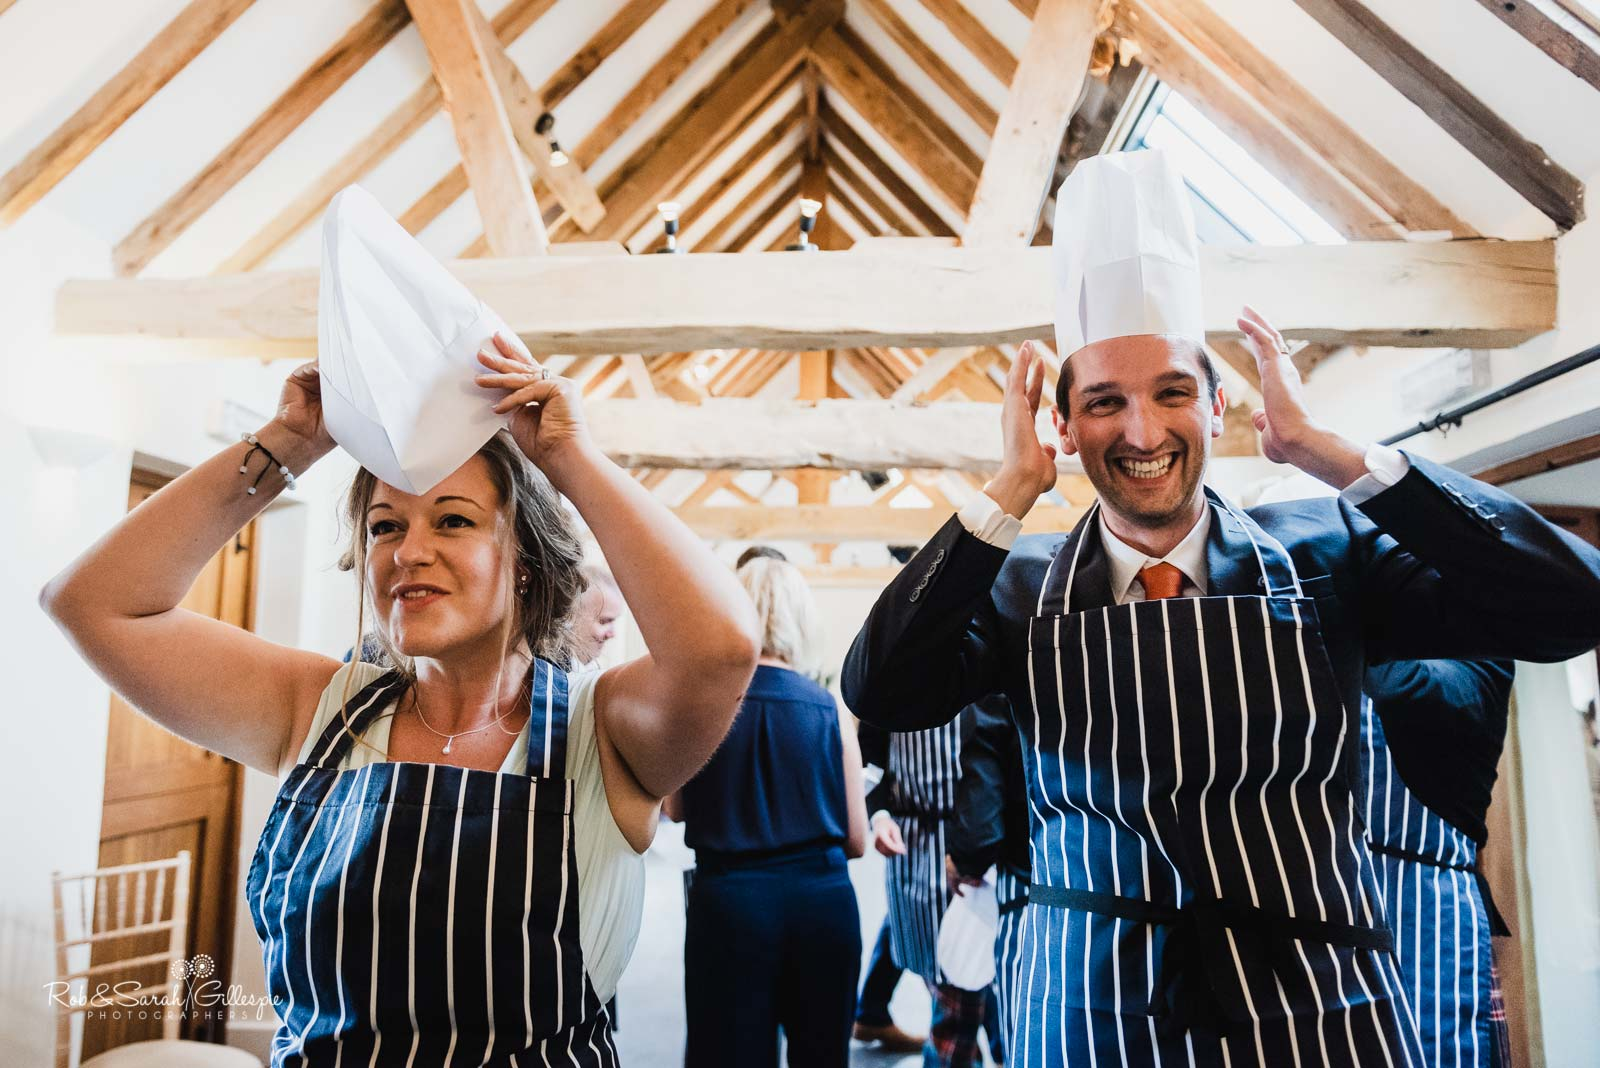 Guests put on chefs hats at Wethele Manor